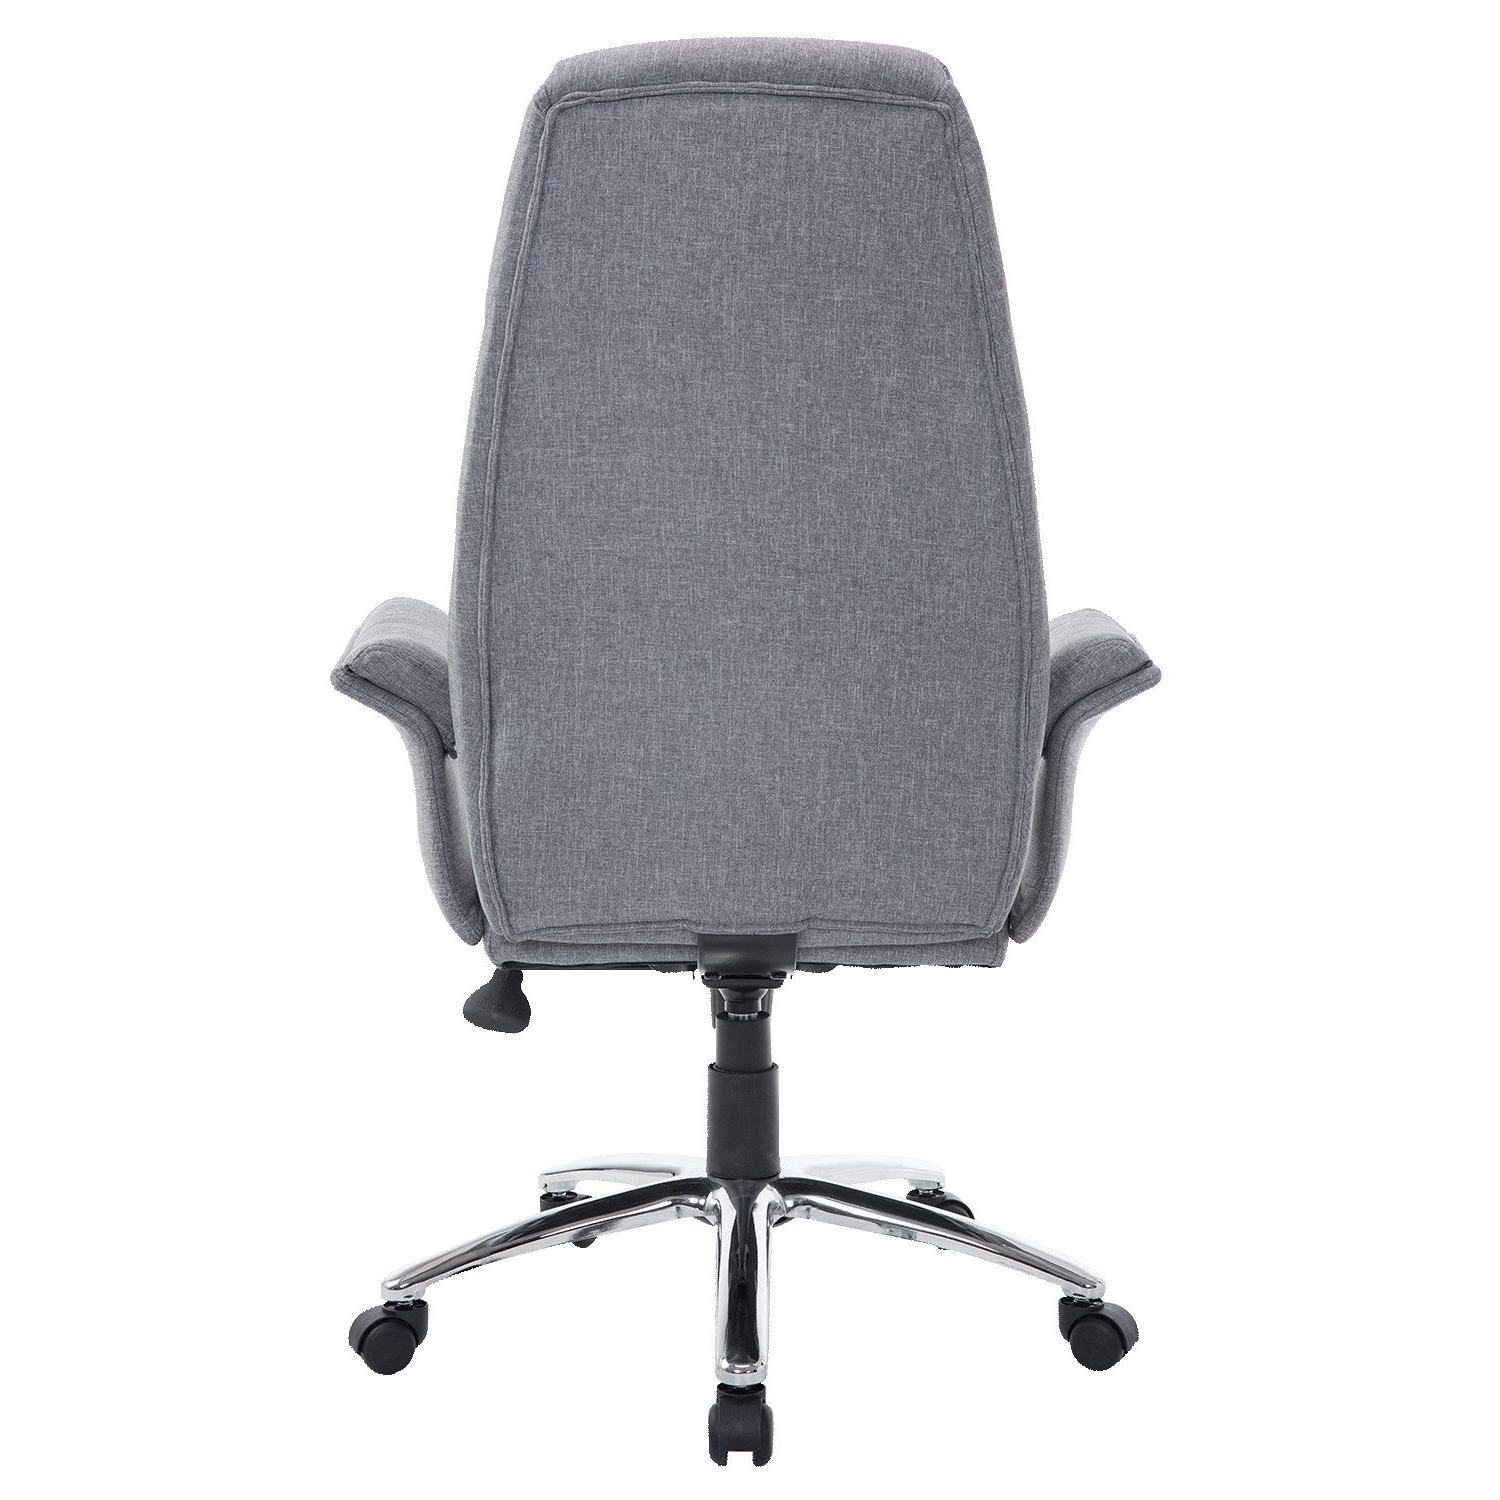 Most Recently Released Homcom Executive Heated Massage Office Chair – Cream Within Fabric Executive Office Chairs (View 15 of 20)